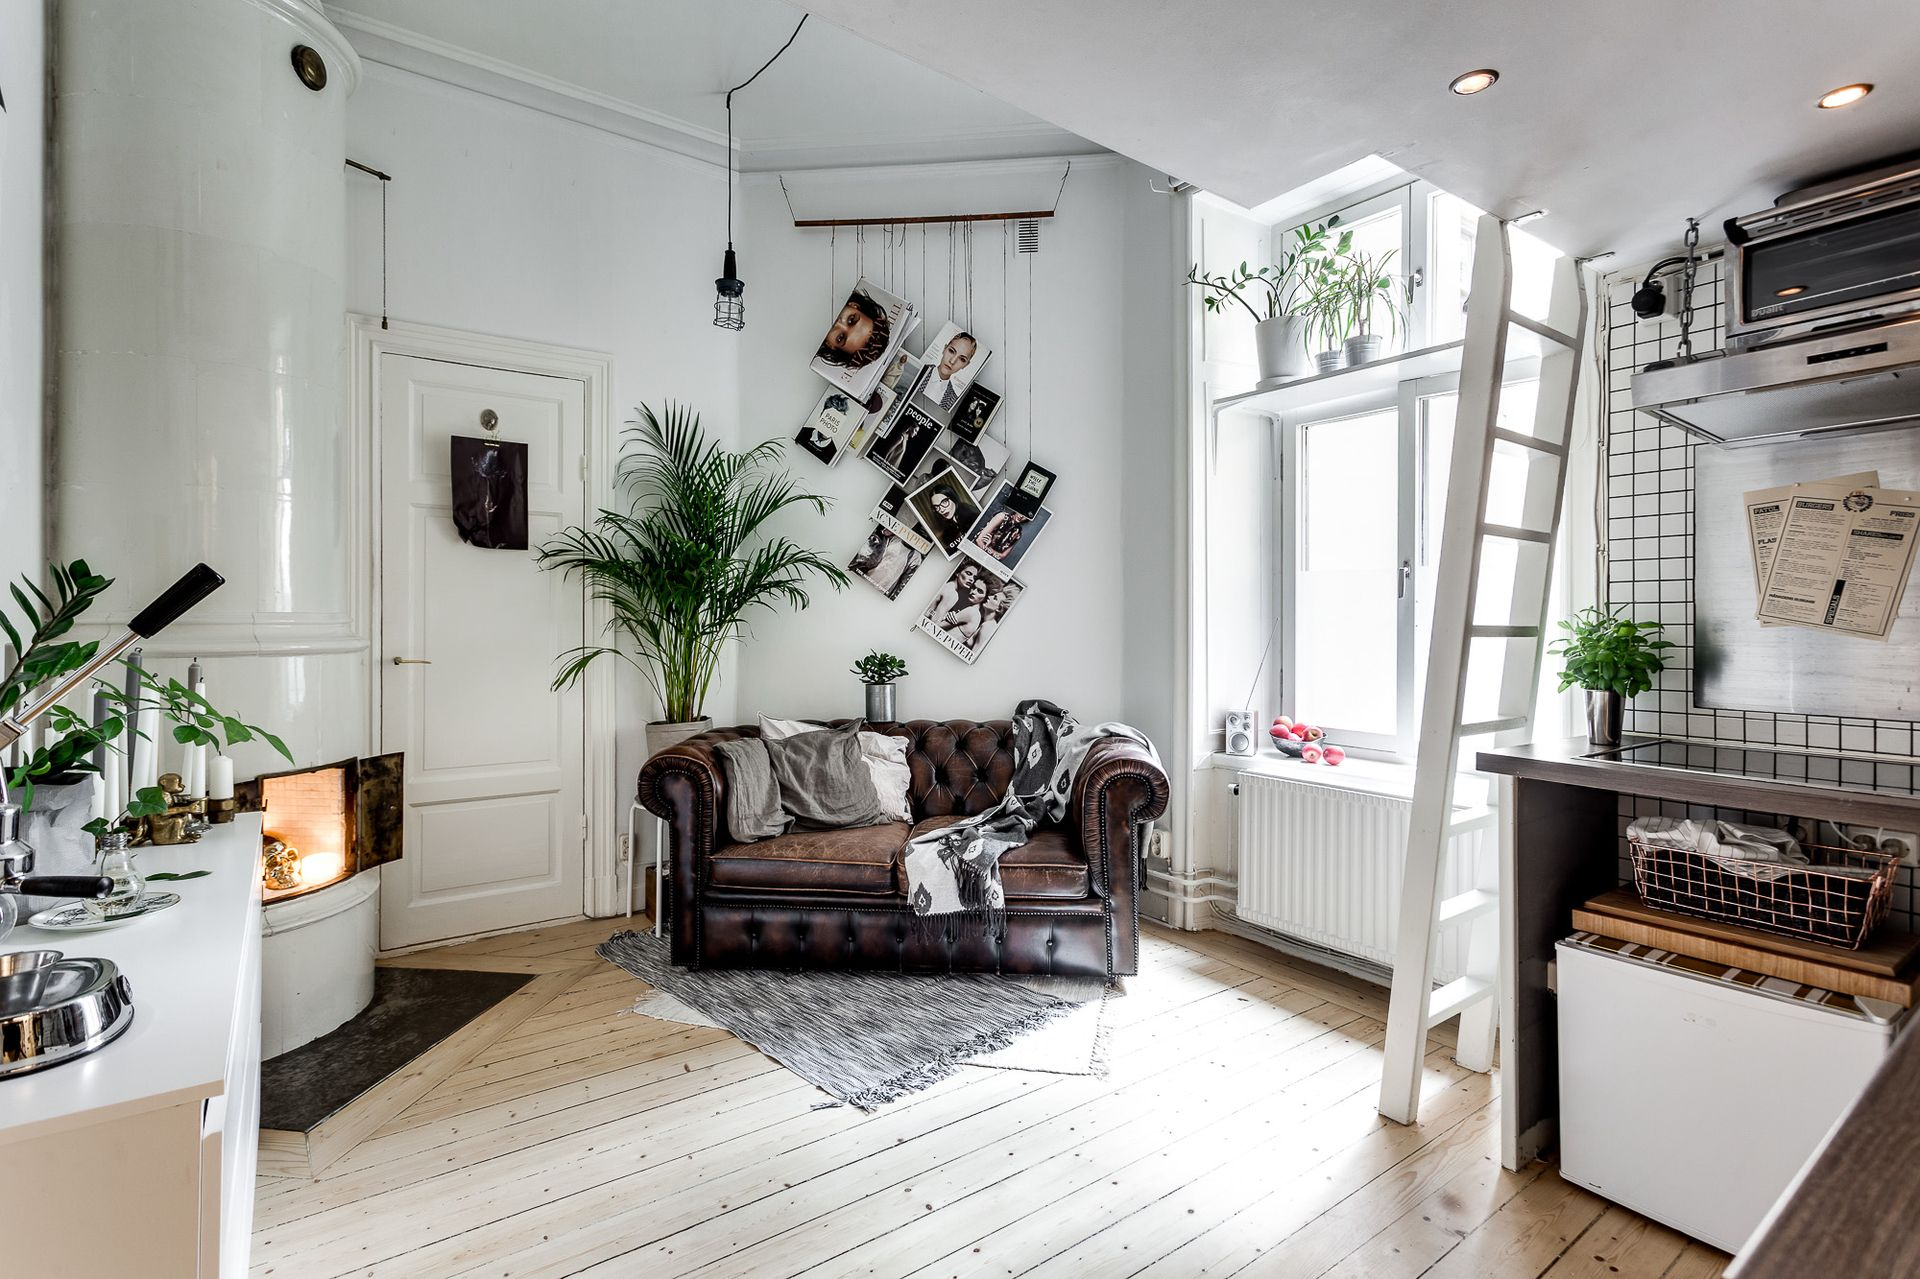 A cool tiny studio apartment with Chesterfield sofa and